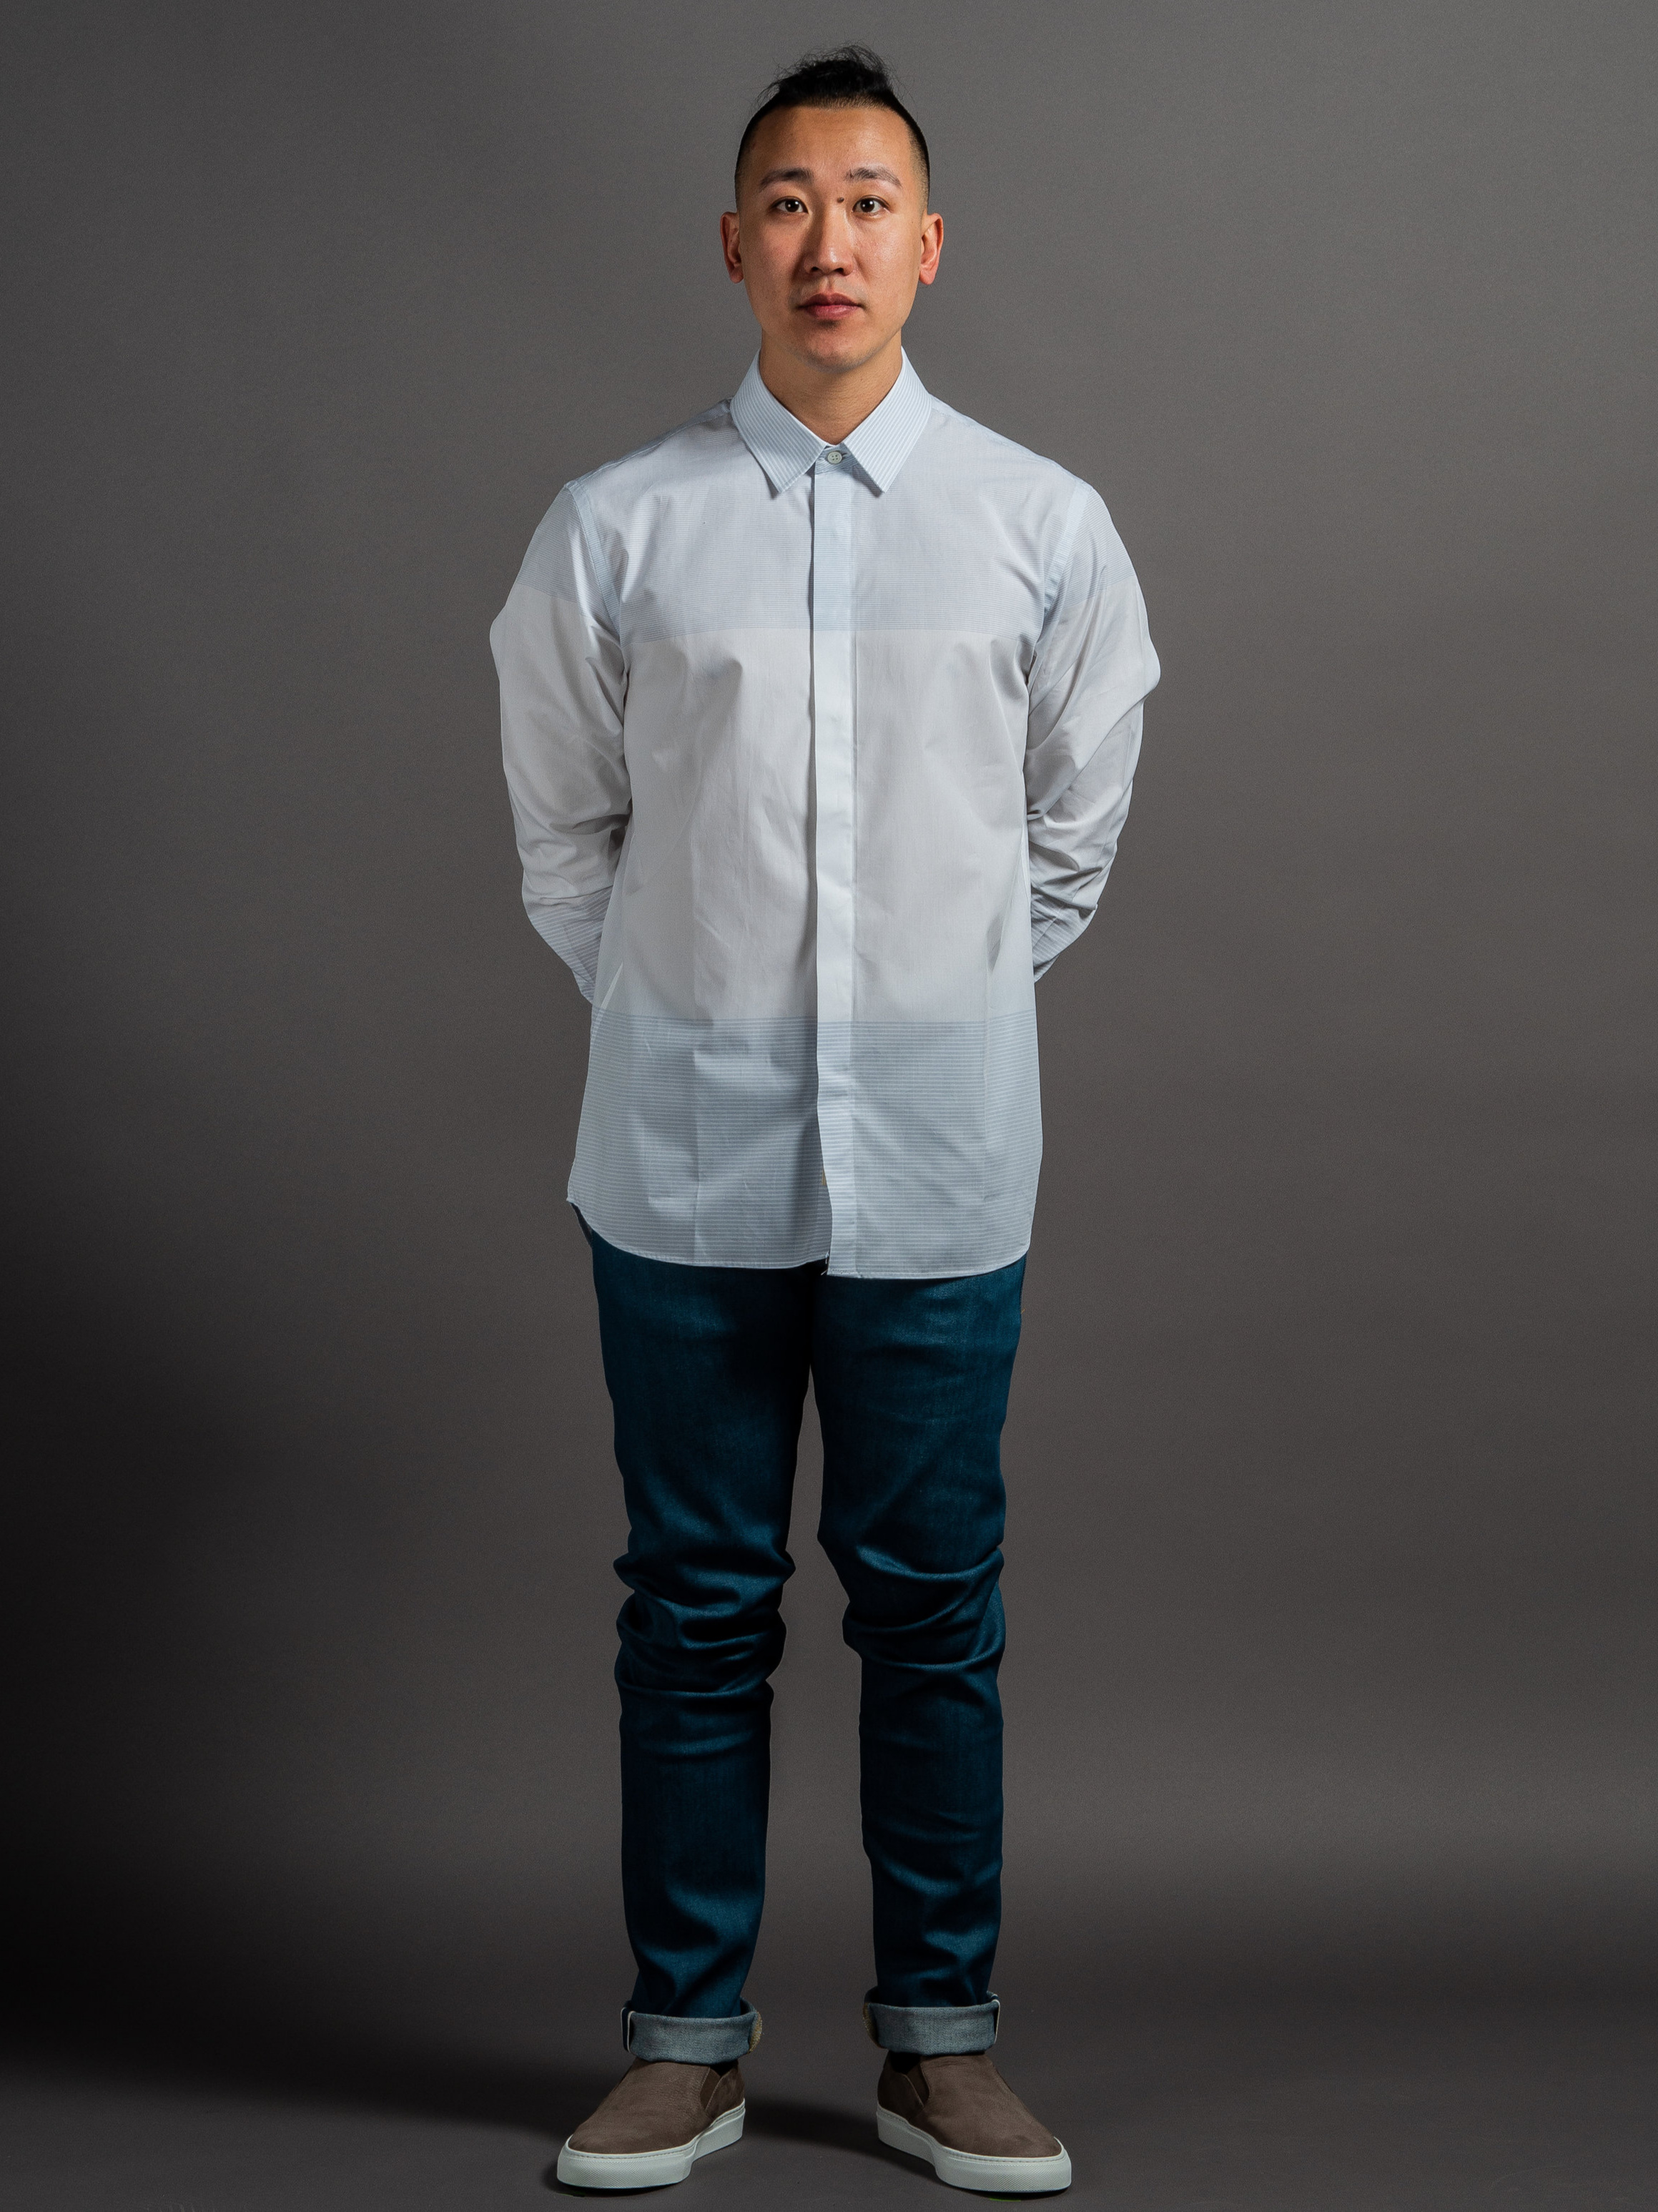 Outclass Engineered Stripe Dress Shirt  Naked & Famous Setouchi Stretch Denim  Wings + Horns Nubuck Slip-Ons    SHOP THIS LOOK